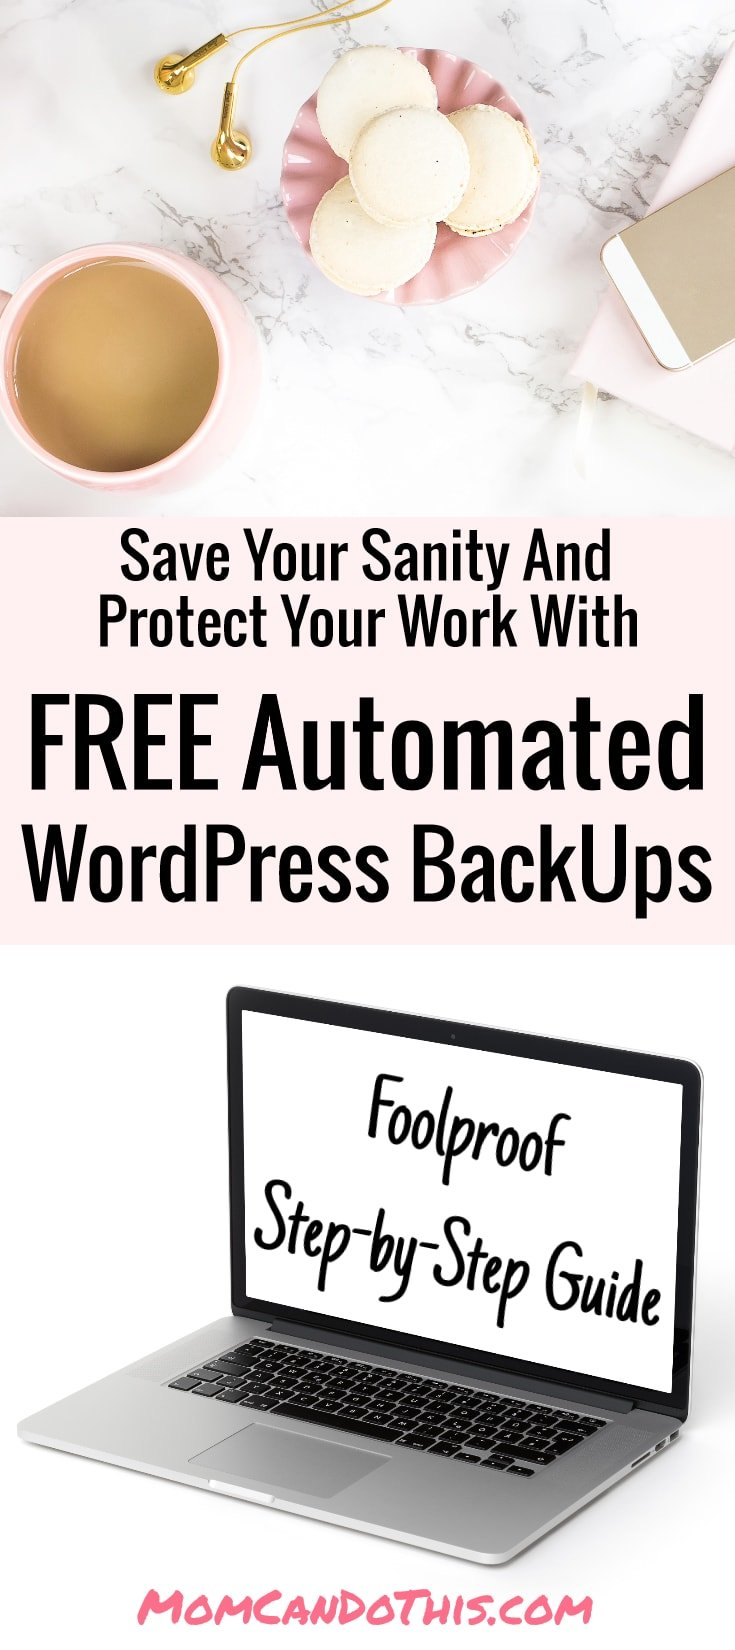 Super easy instructions to follow if you need blogging tips. Blogging for beginners is hard. Protect your work with WordPress Backups on Autopilot. Save this pin!